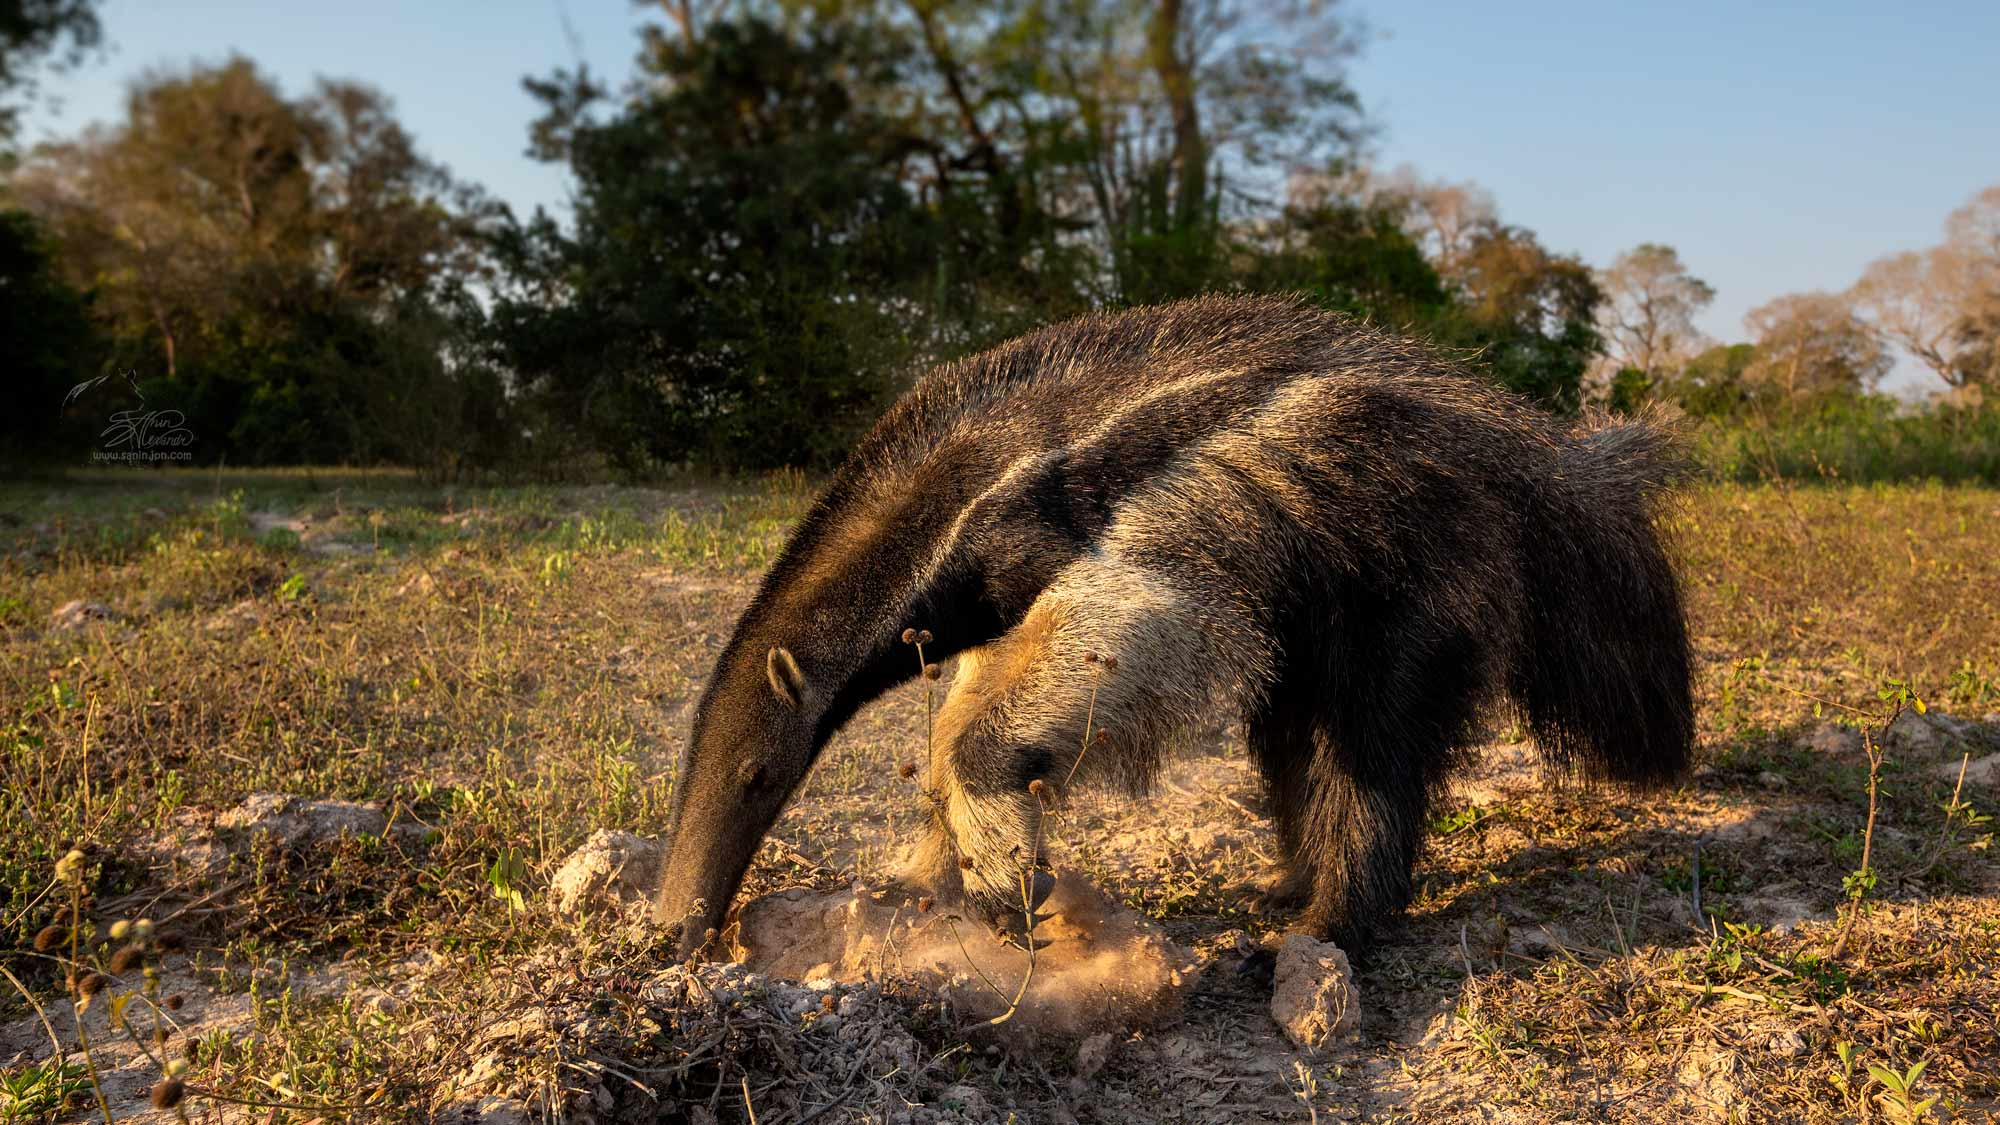 Giant ant-eater digging for ants in Brazil